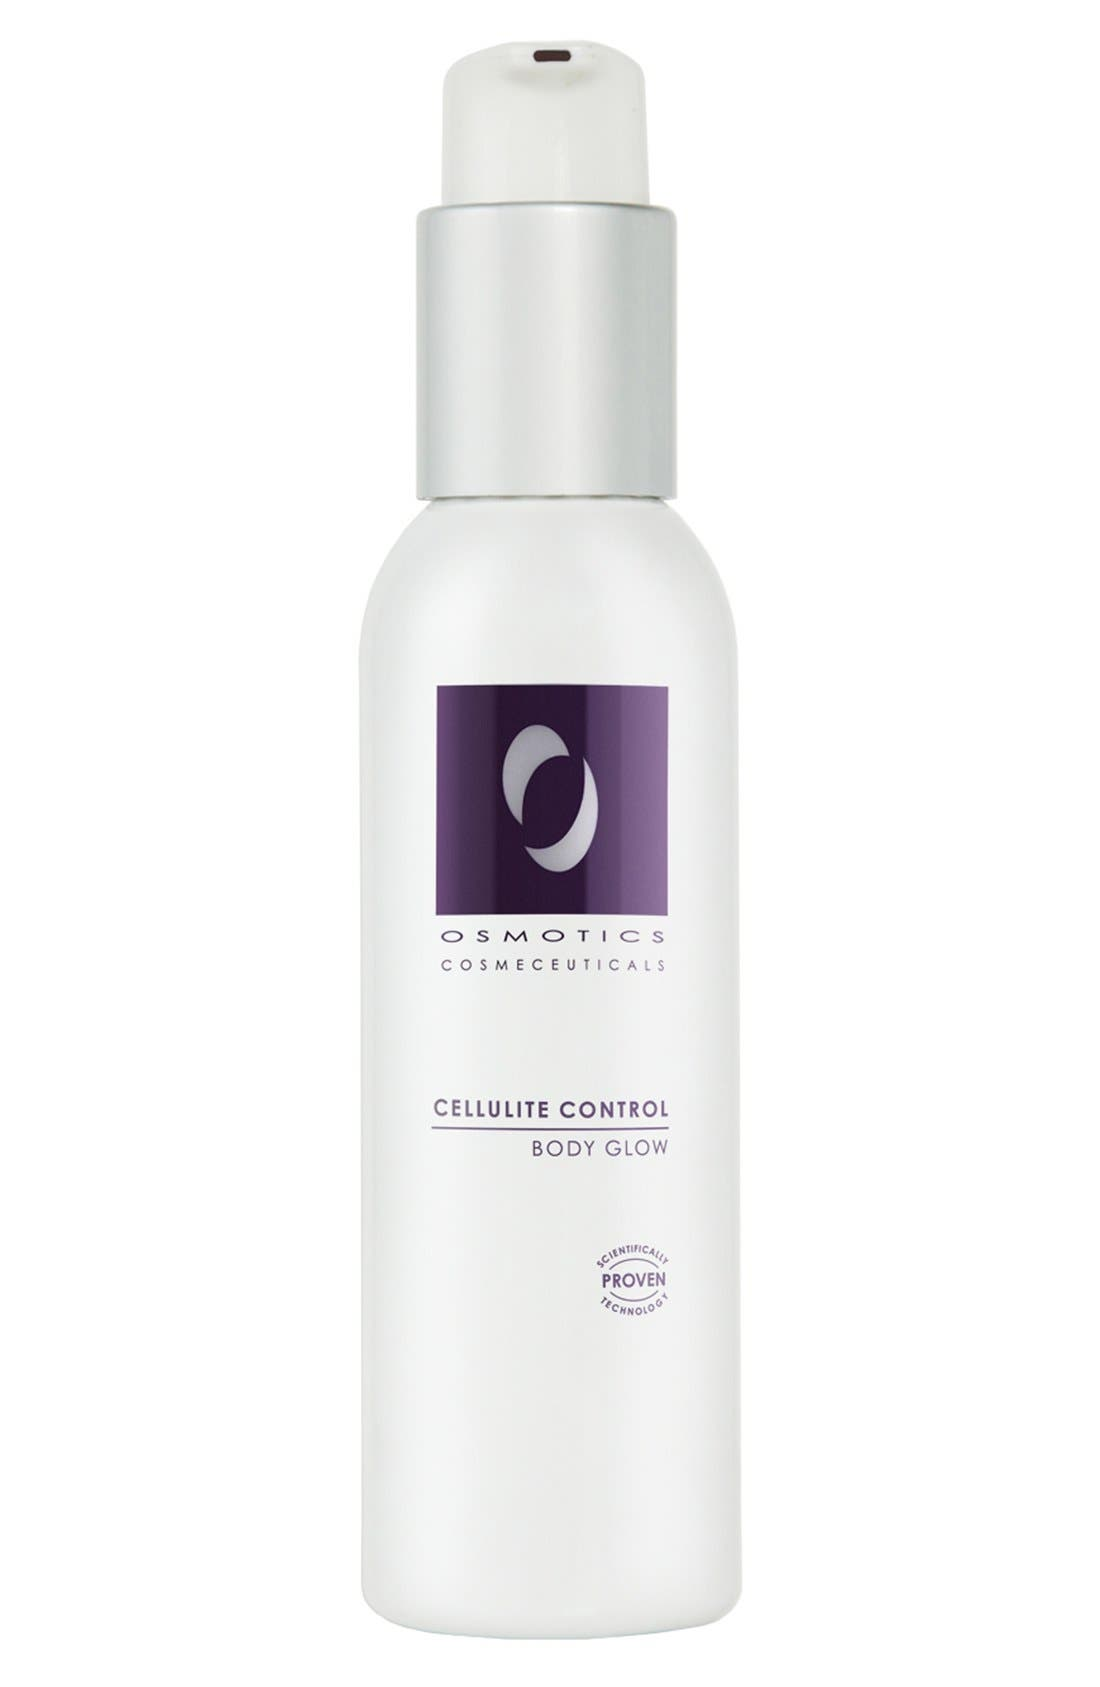 Osmotics Cosmeceuticals Cellulite Control Body Glow